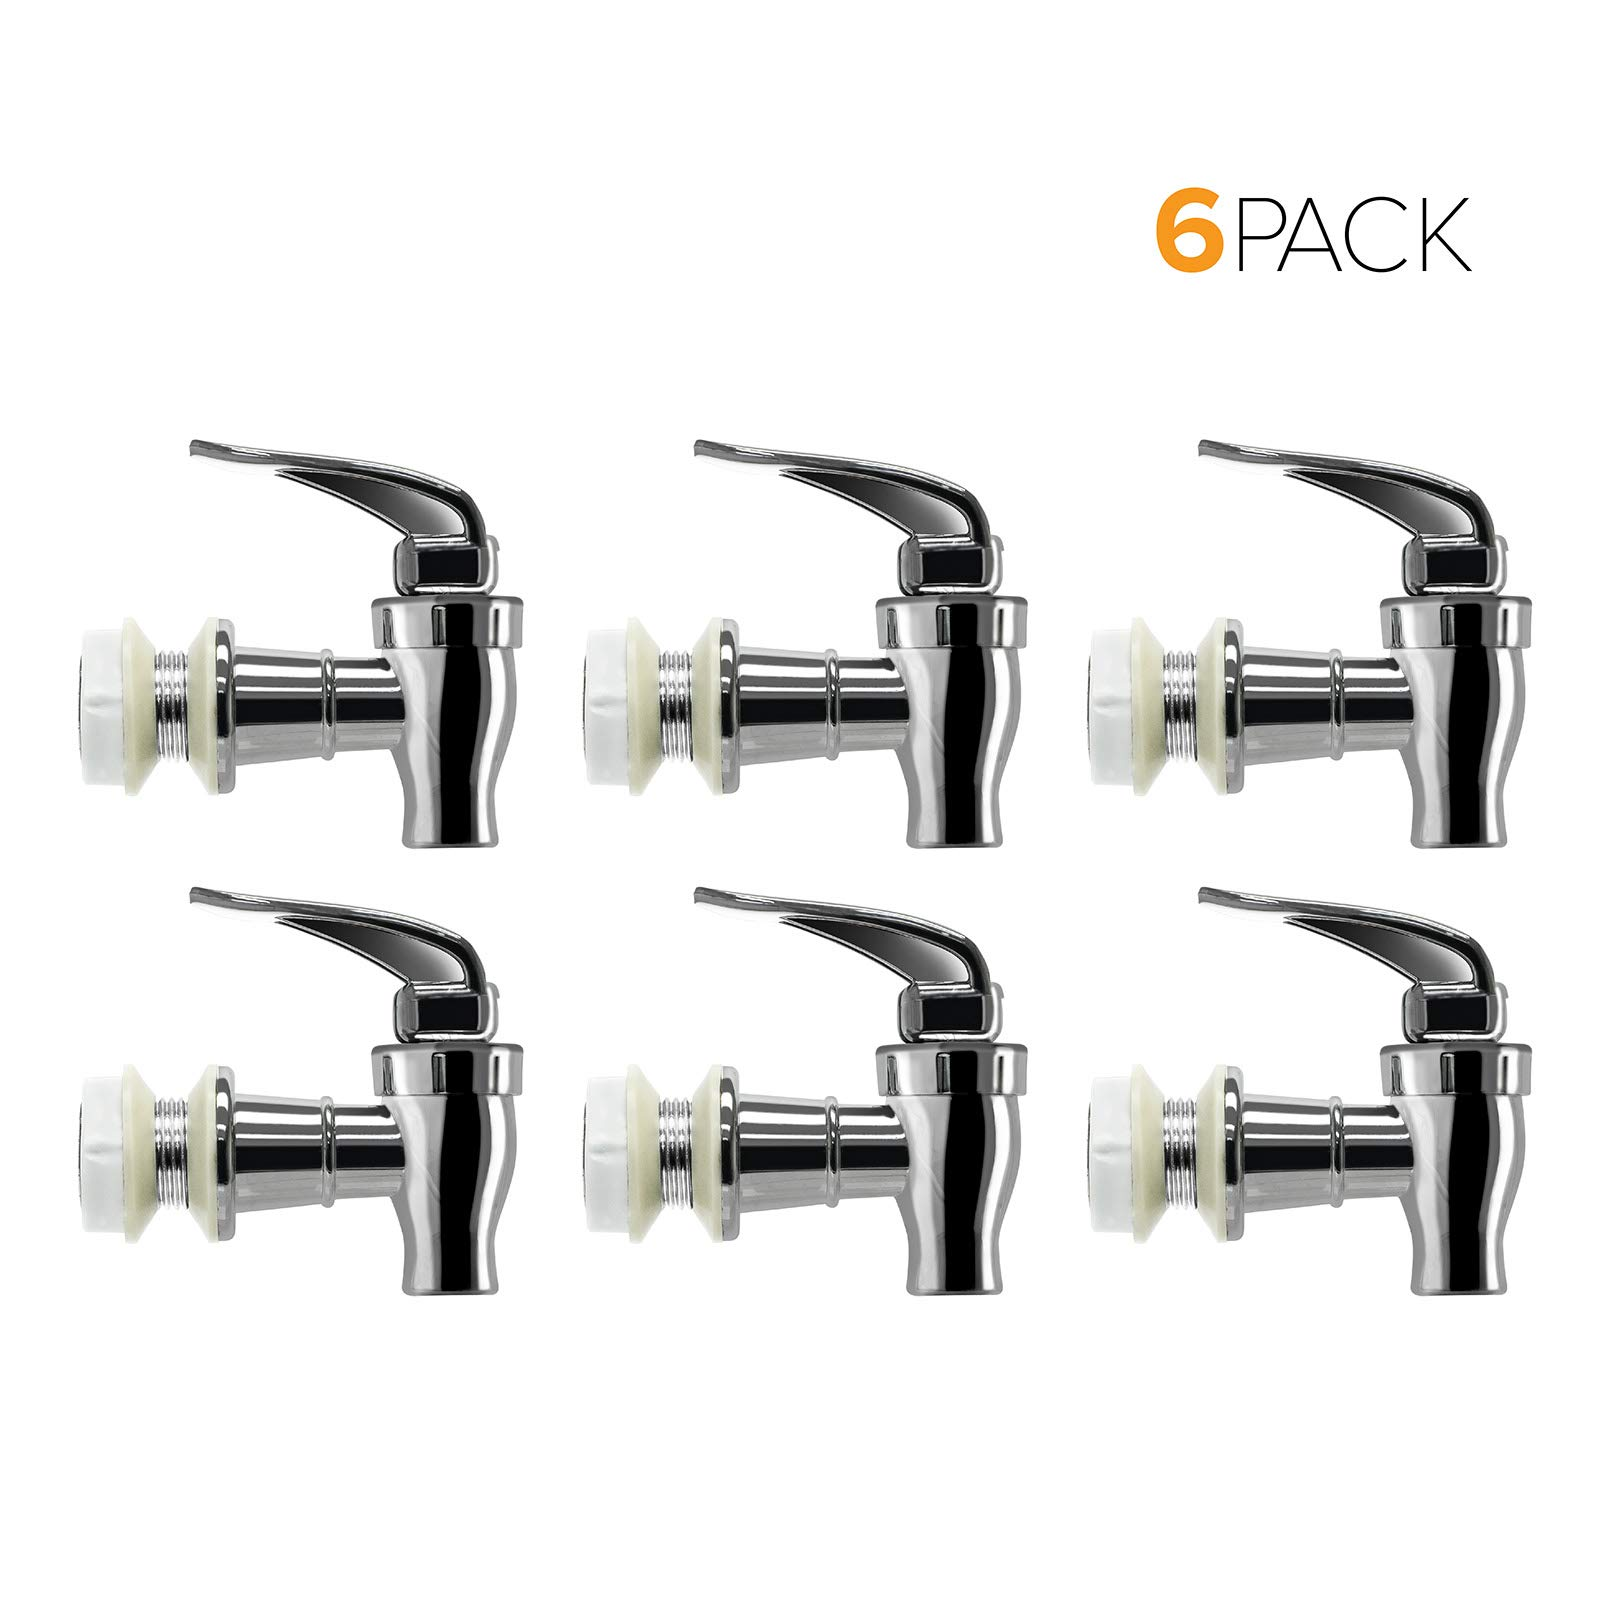 Brio Water Dispenser Replacement Valve 6-PACK, Cooler Faucet Spigot for Beverage Dispensers, Crocks, Coolers, and More BPA-Free Food Safe Material (Chrome) by Brio